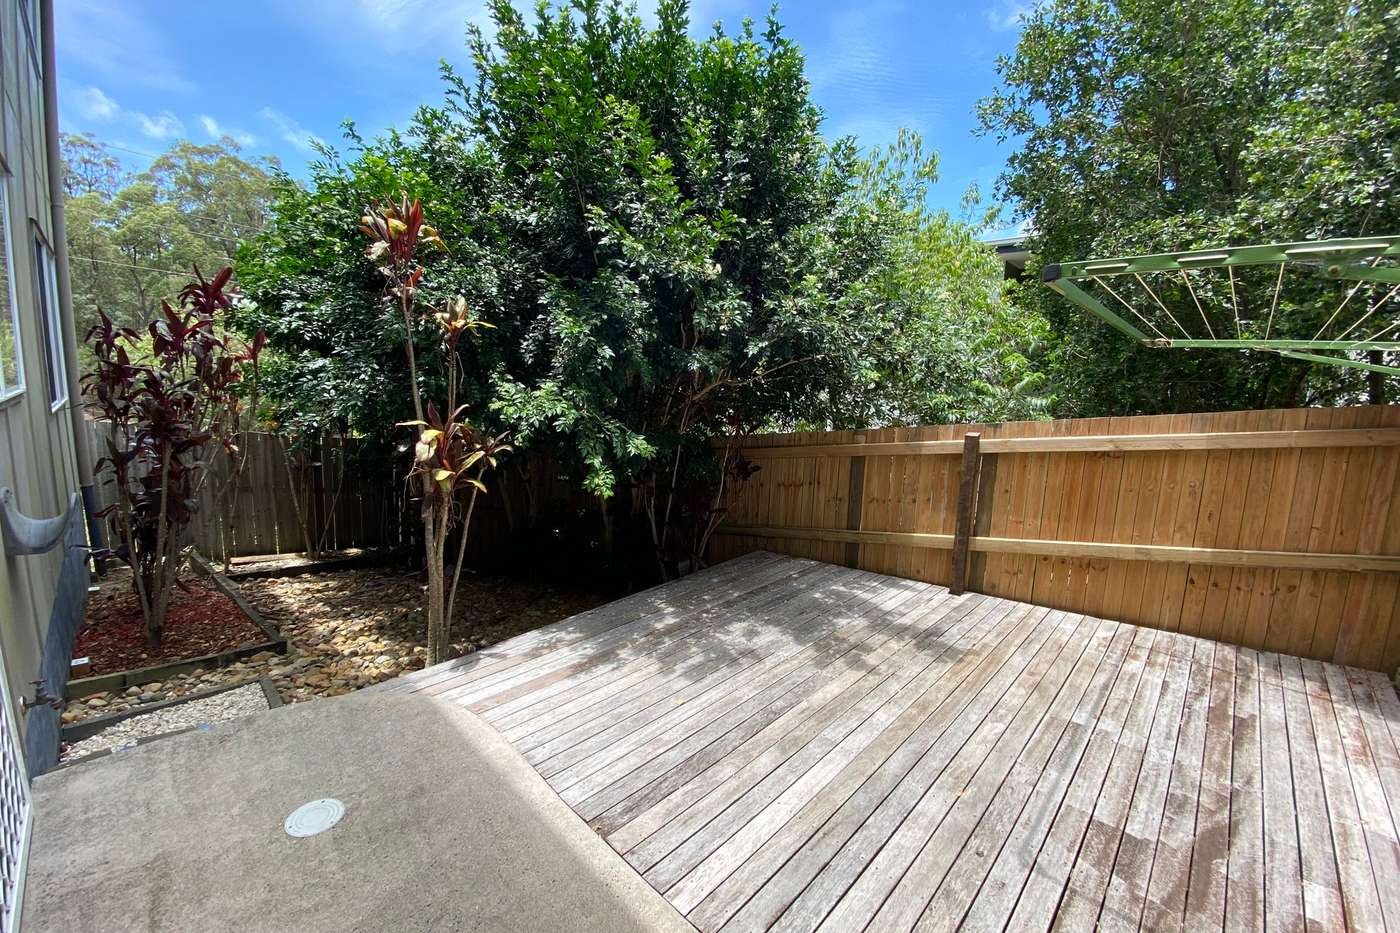 Main view of Homely townhouse listing, 12/28 Birch Street, Caloundra West, QLD 4551